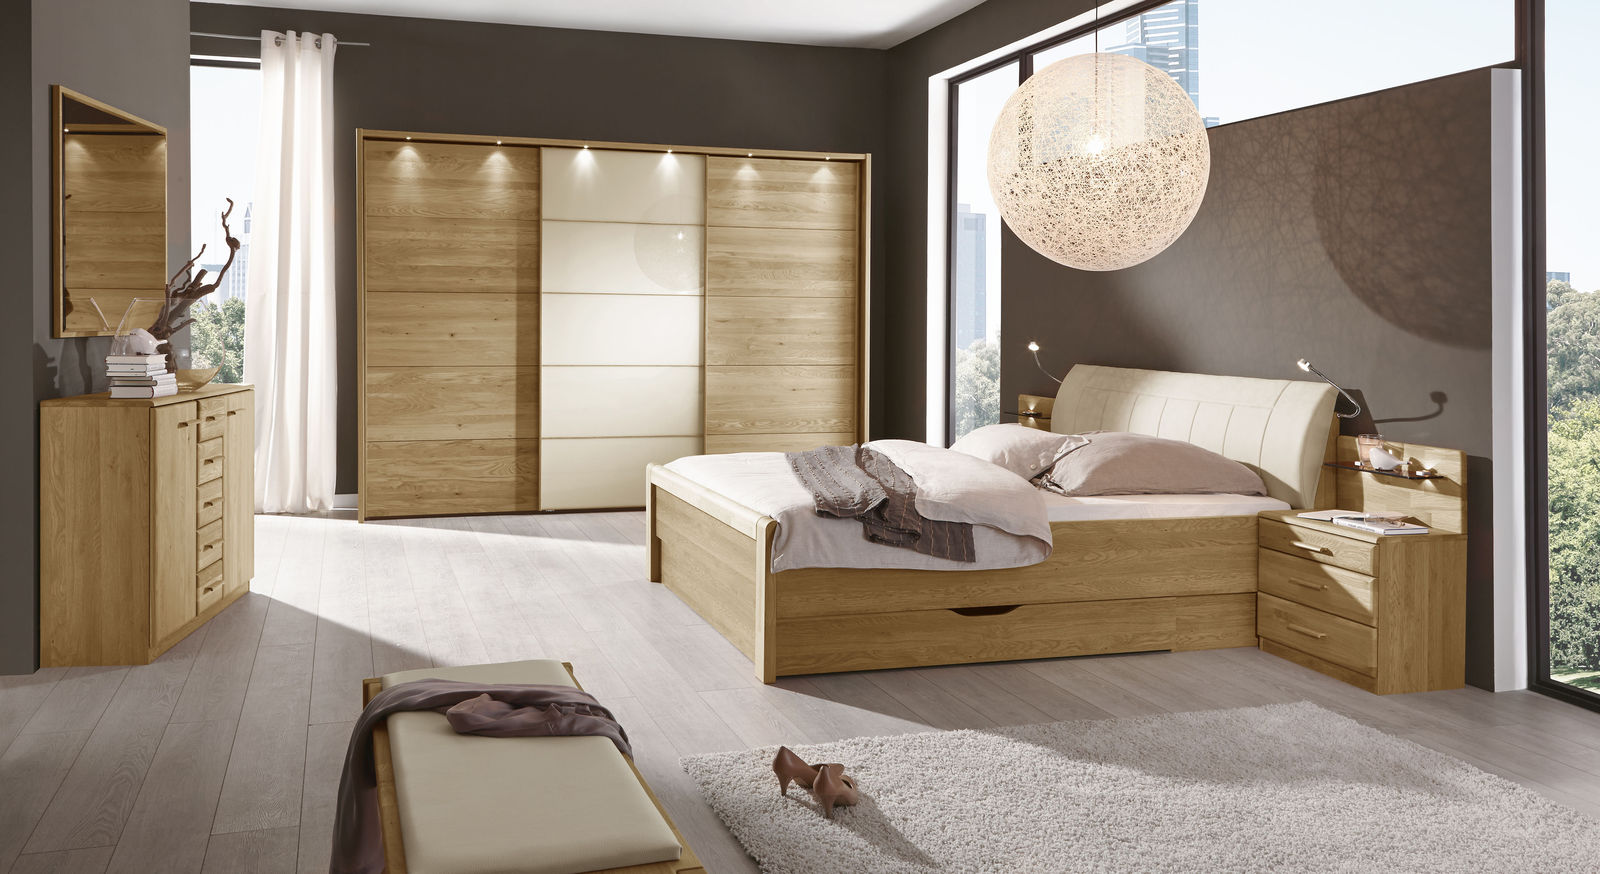 wandgestaltung wohnzimmer rustikal. Black Bedroom Furniture Sets. Home Design Ideas